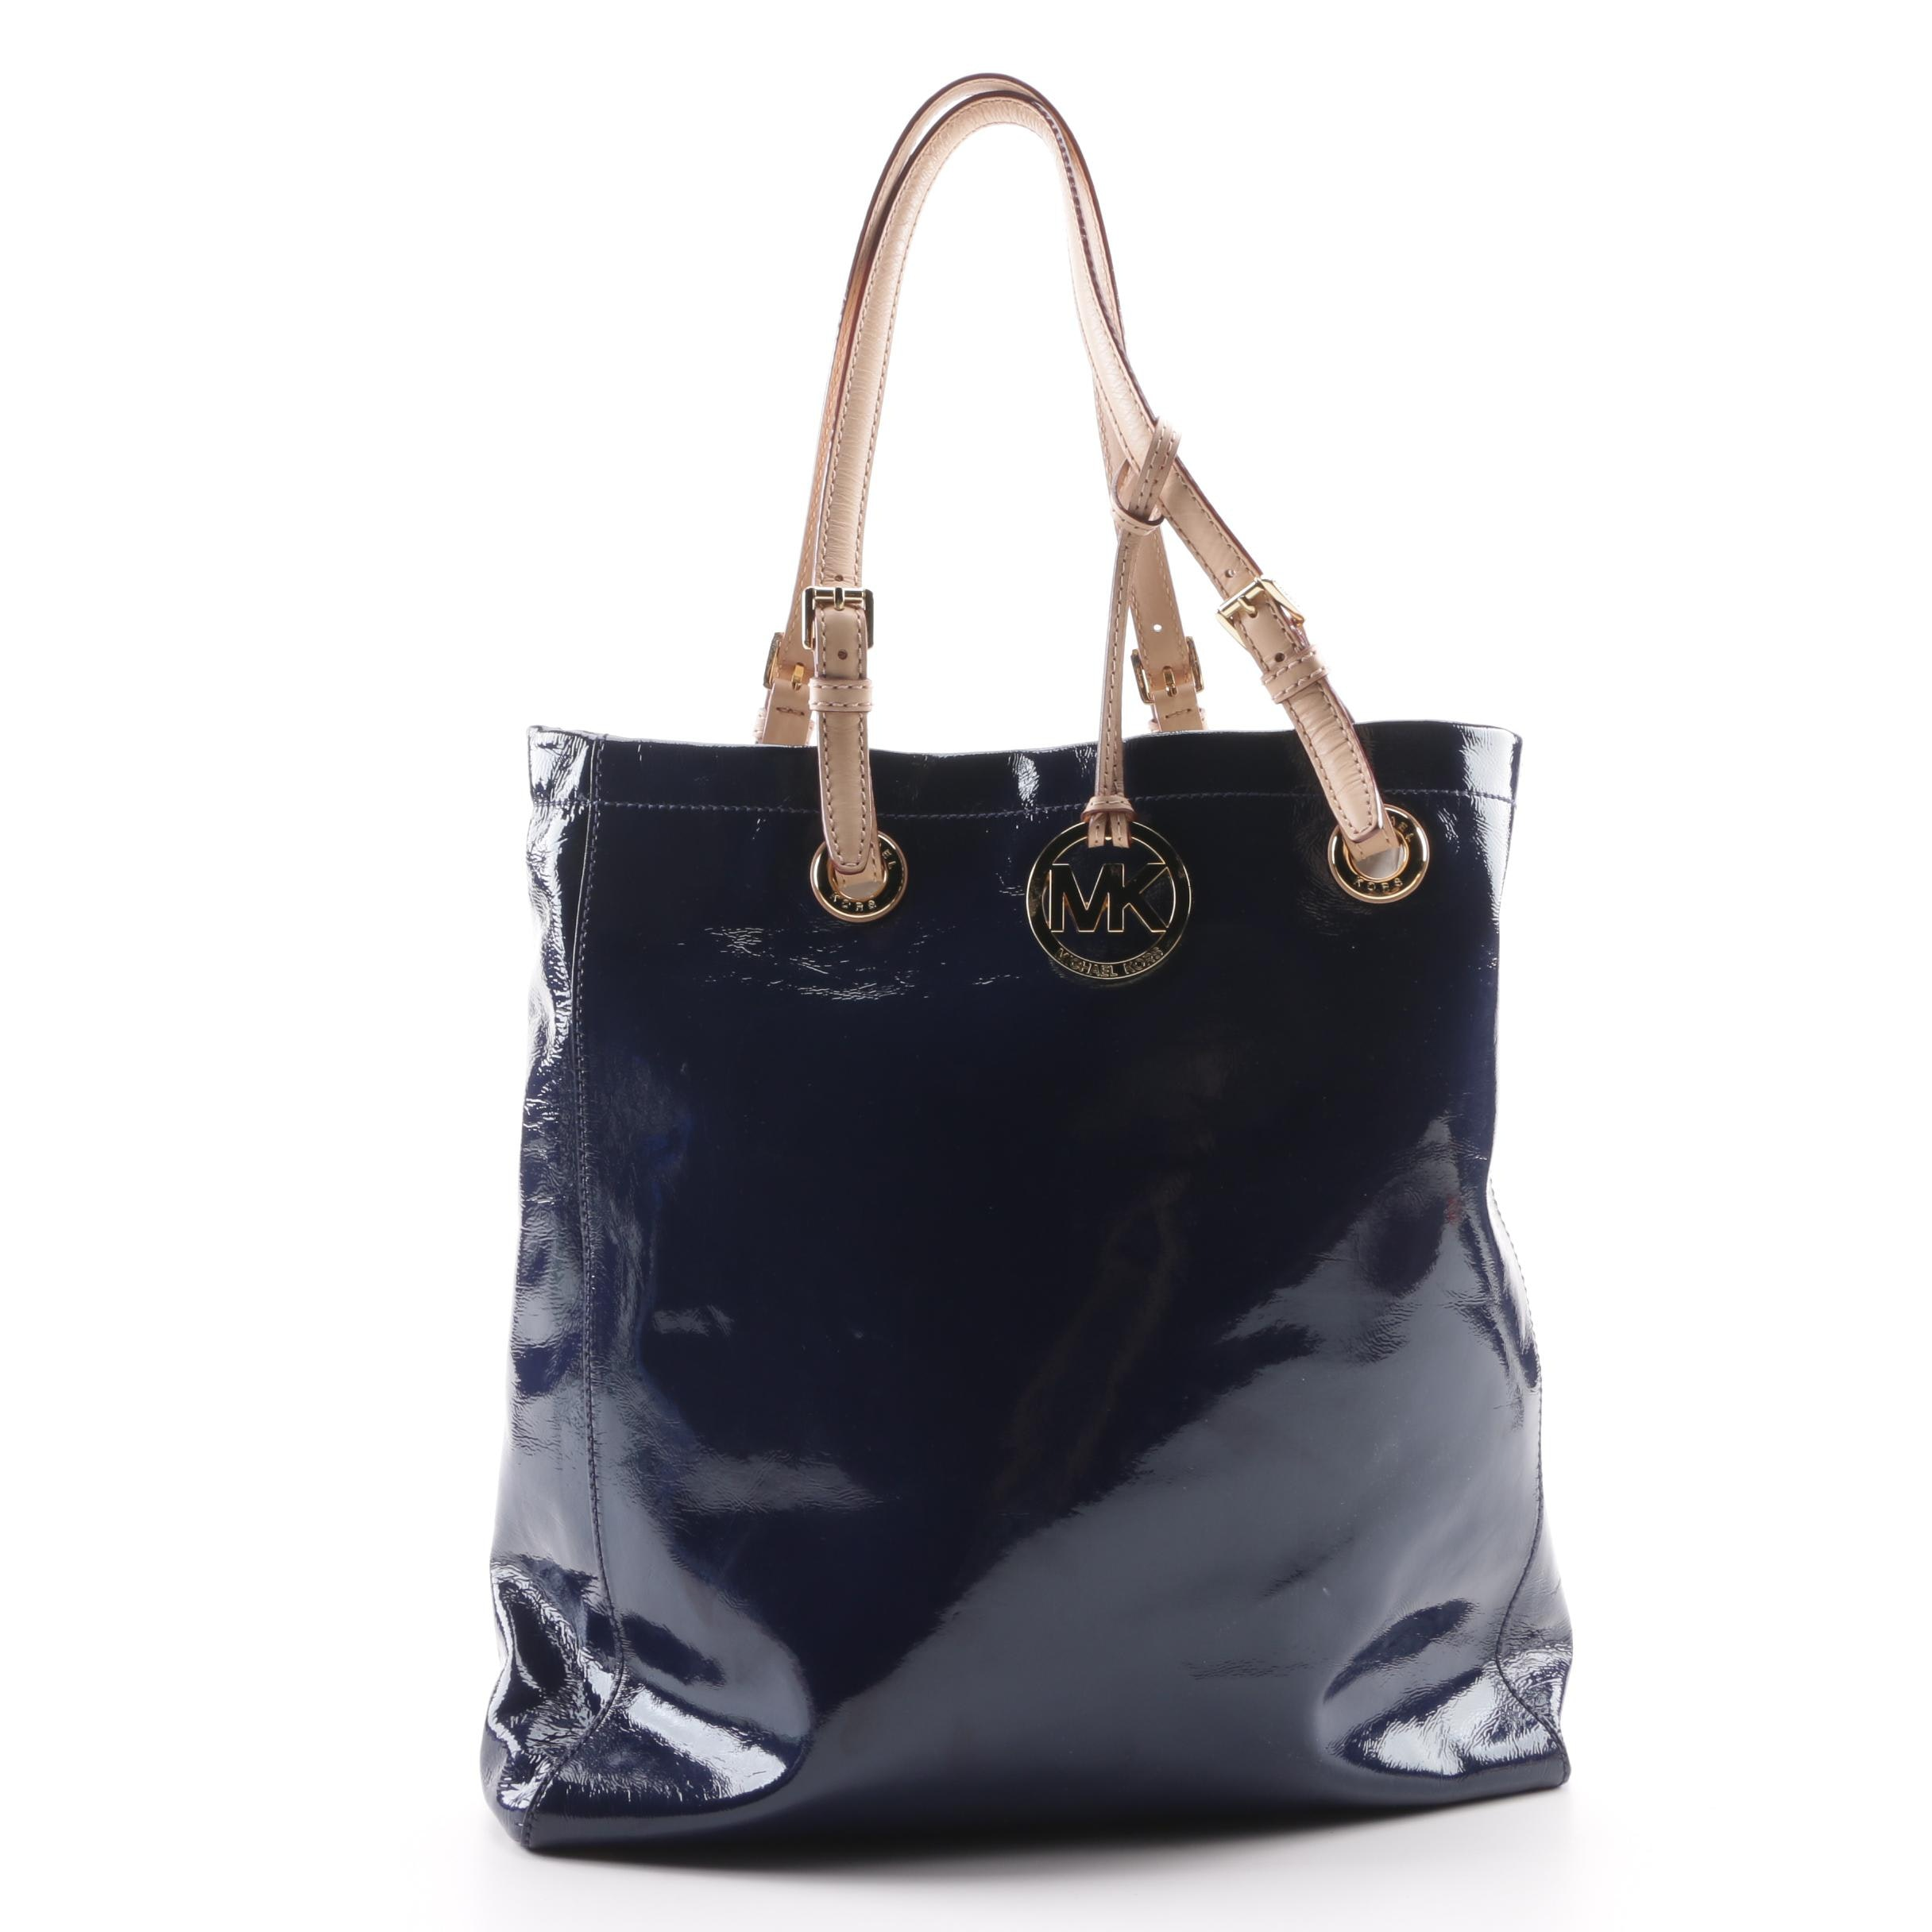 MICHAEL Michael Kors Navy Blue Patent Leather Tote